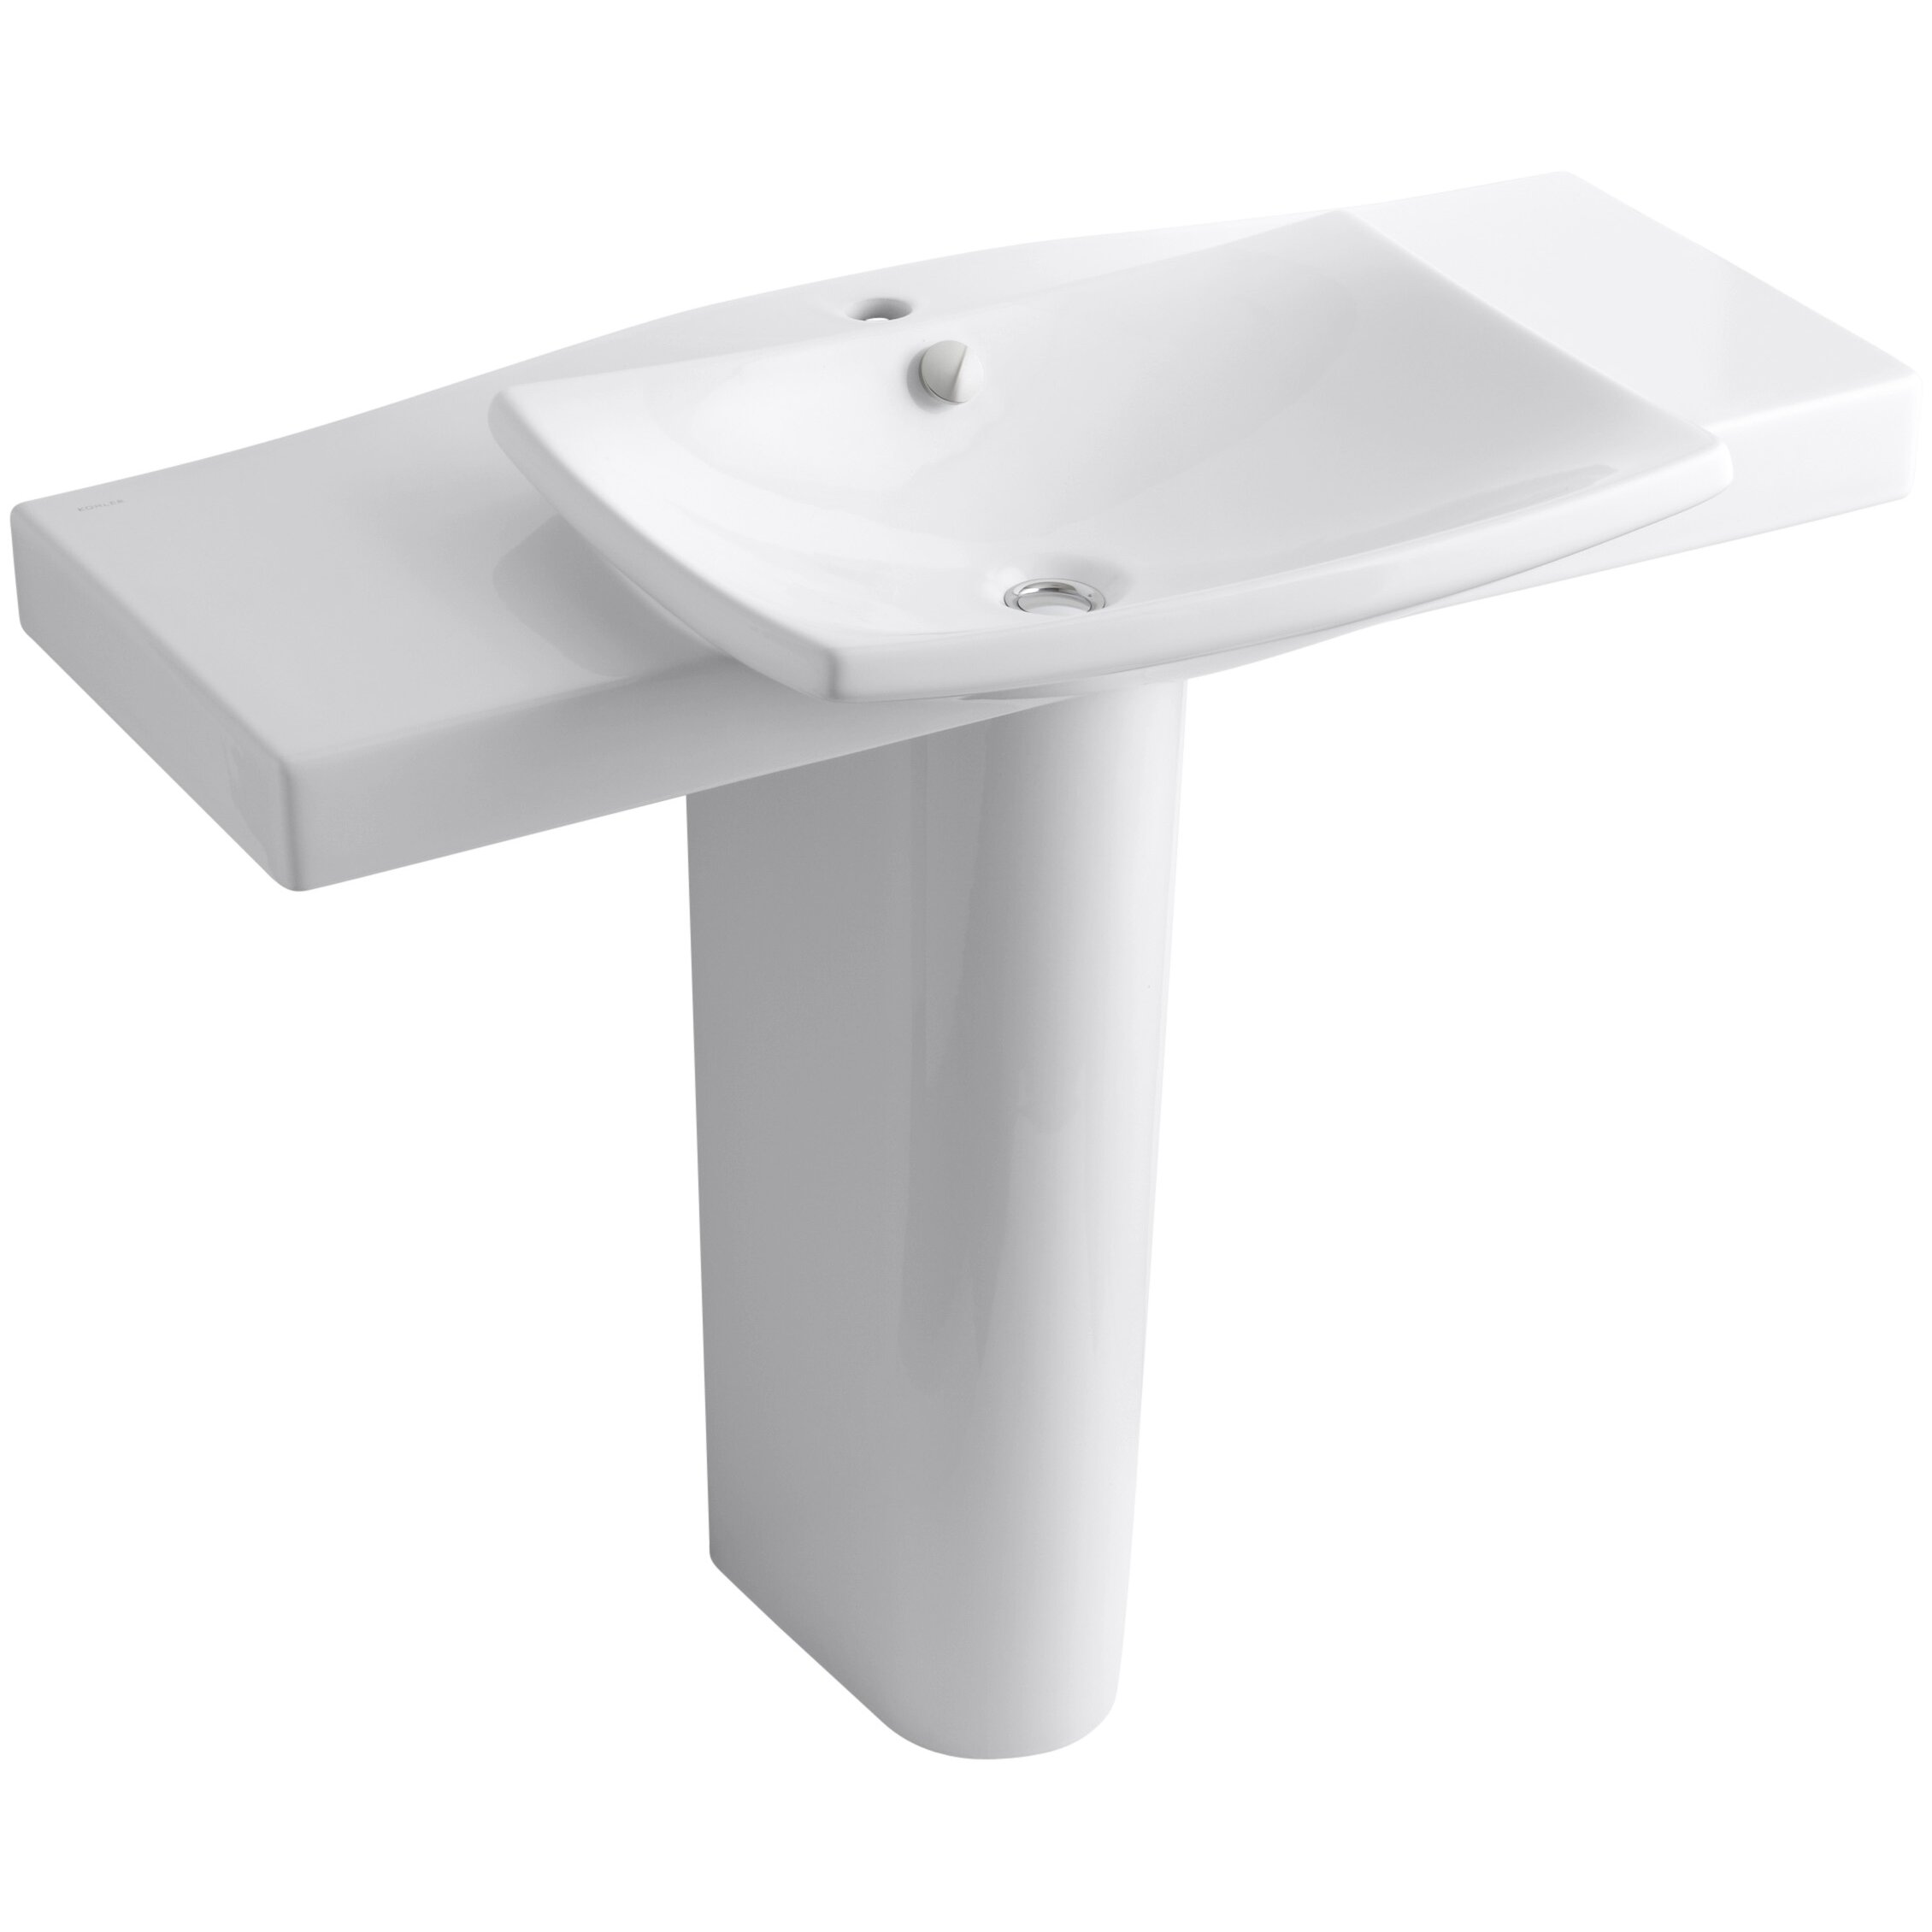 Pedestal Sink Faucet : Kohler Escale Pedestal Bathroom Sink with Single Faucet Hole Wayfair